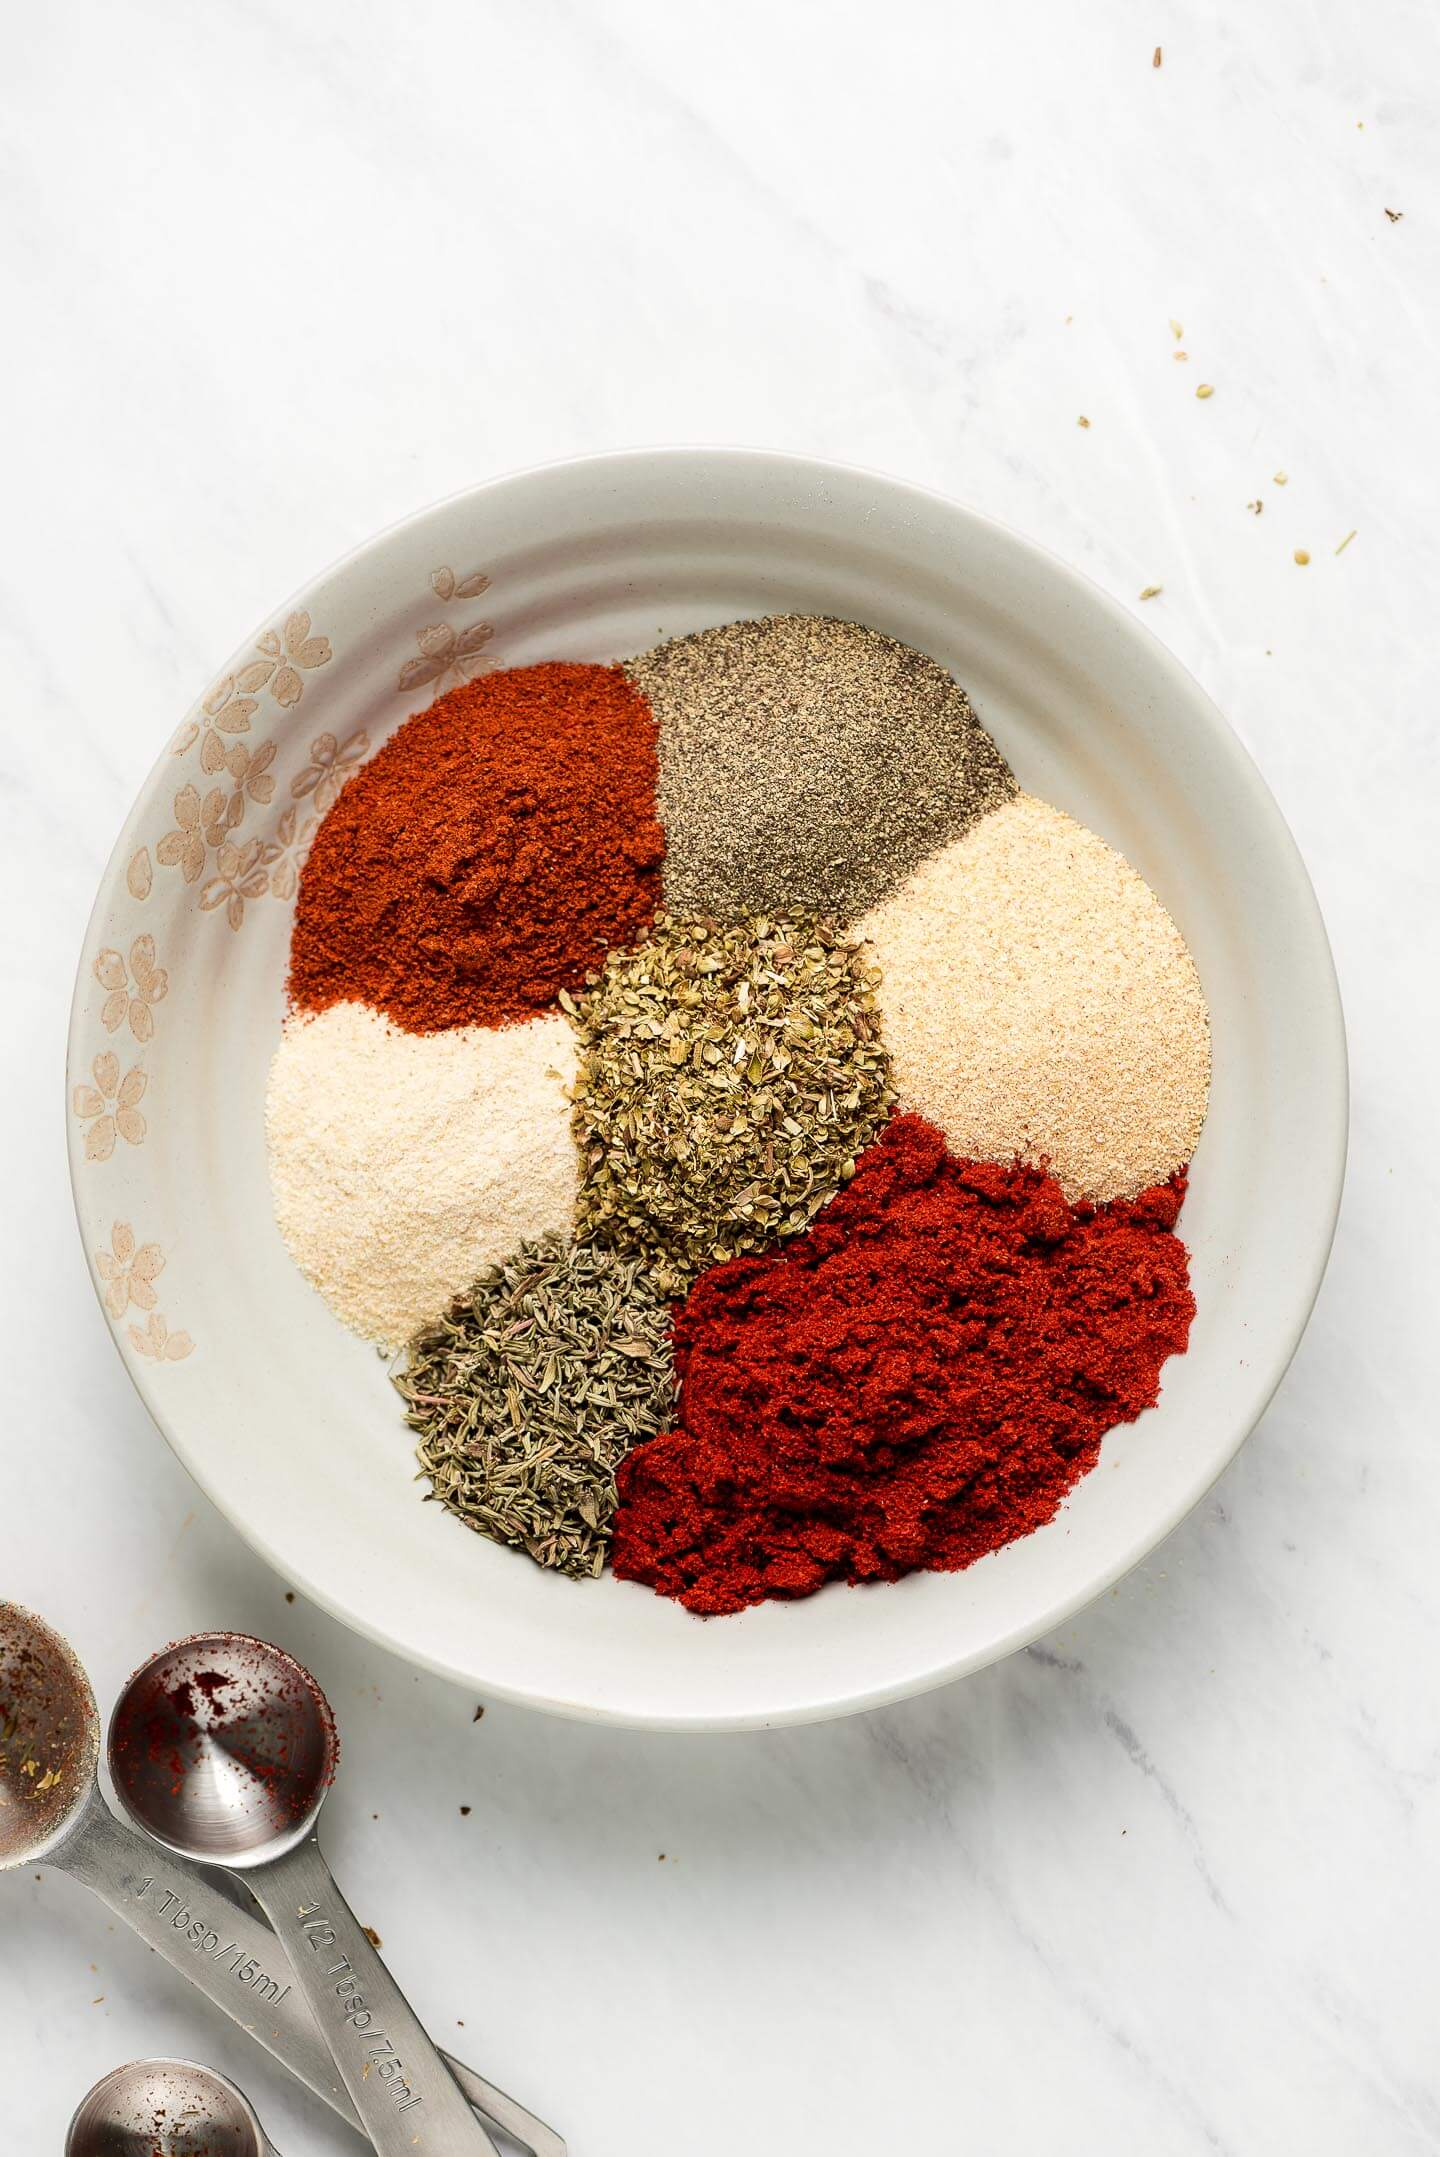 Little piles of spices and herbs in a bowl with measuring spoons to the side.